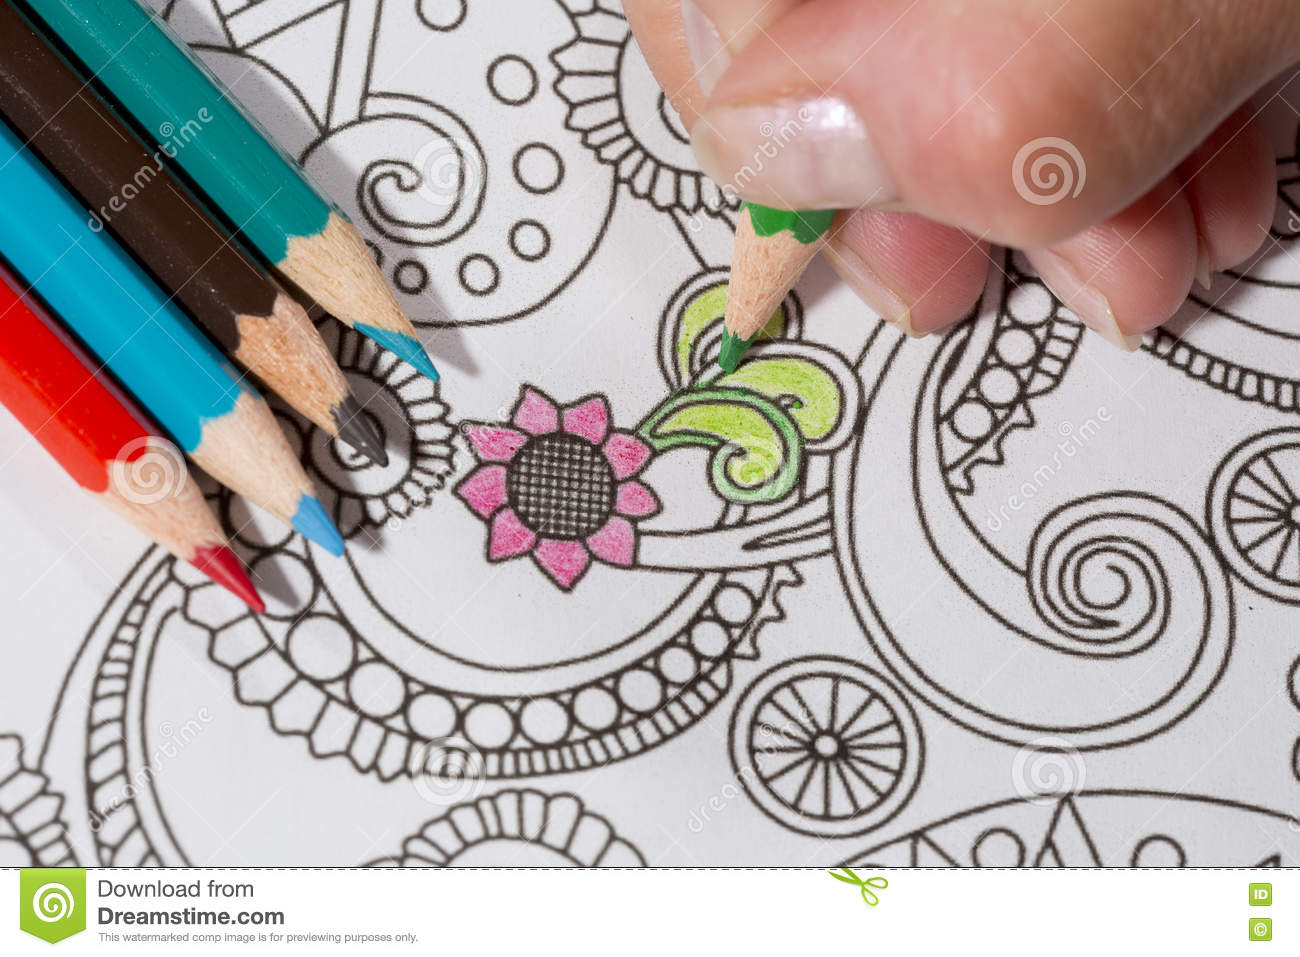 An Image Of A New Trendy Thing Called Adults Coloring Book The Idea Is That Person Illustrative And Detailed Pattern For Stress Relieve